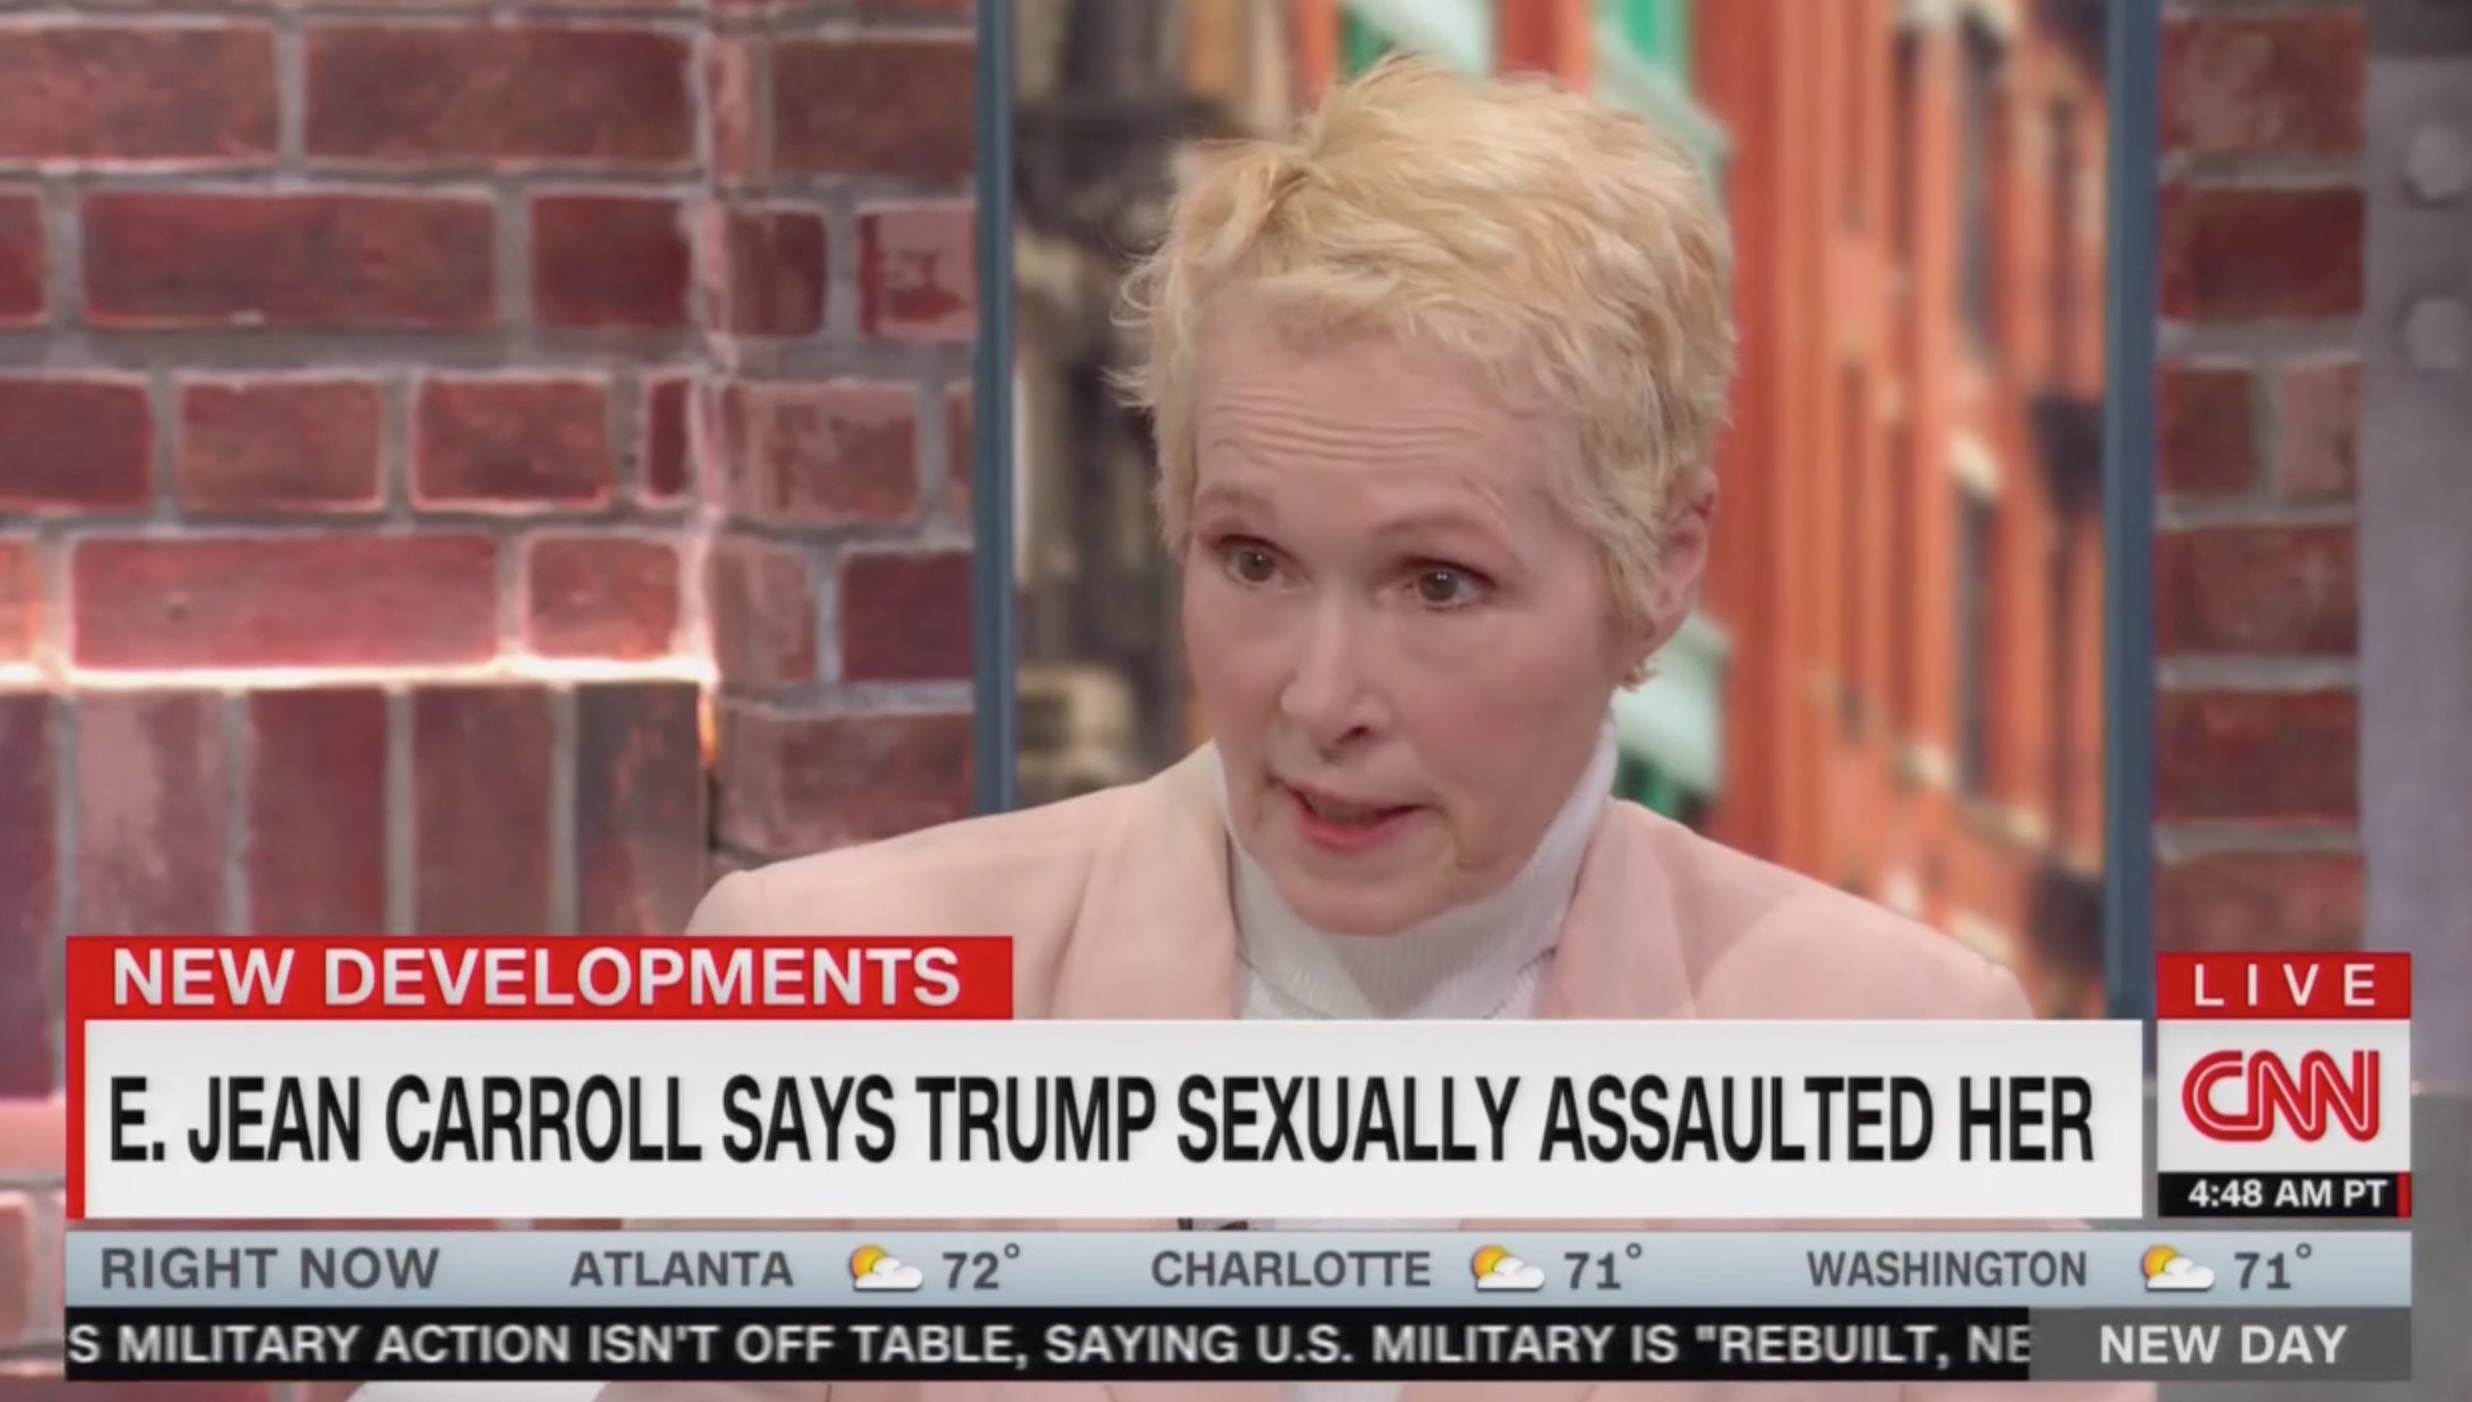 E. Jean Carroll on Trump Ejaculating